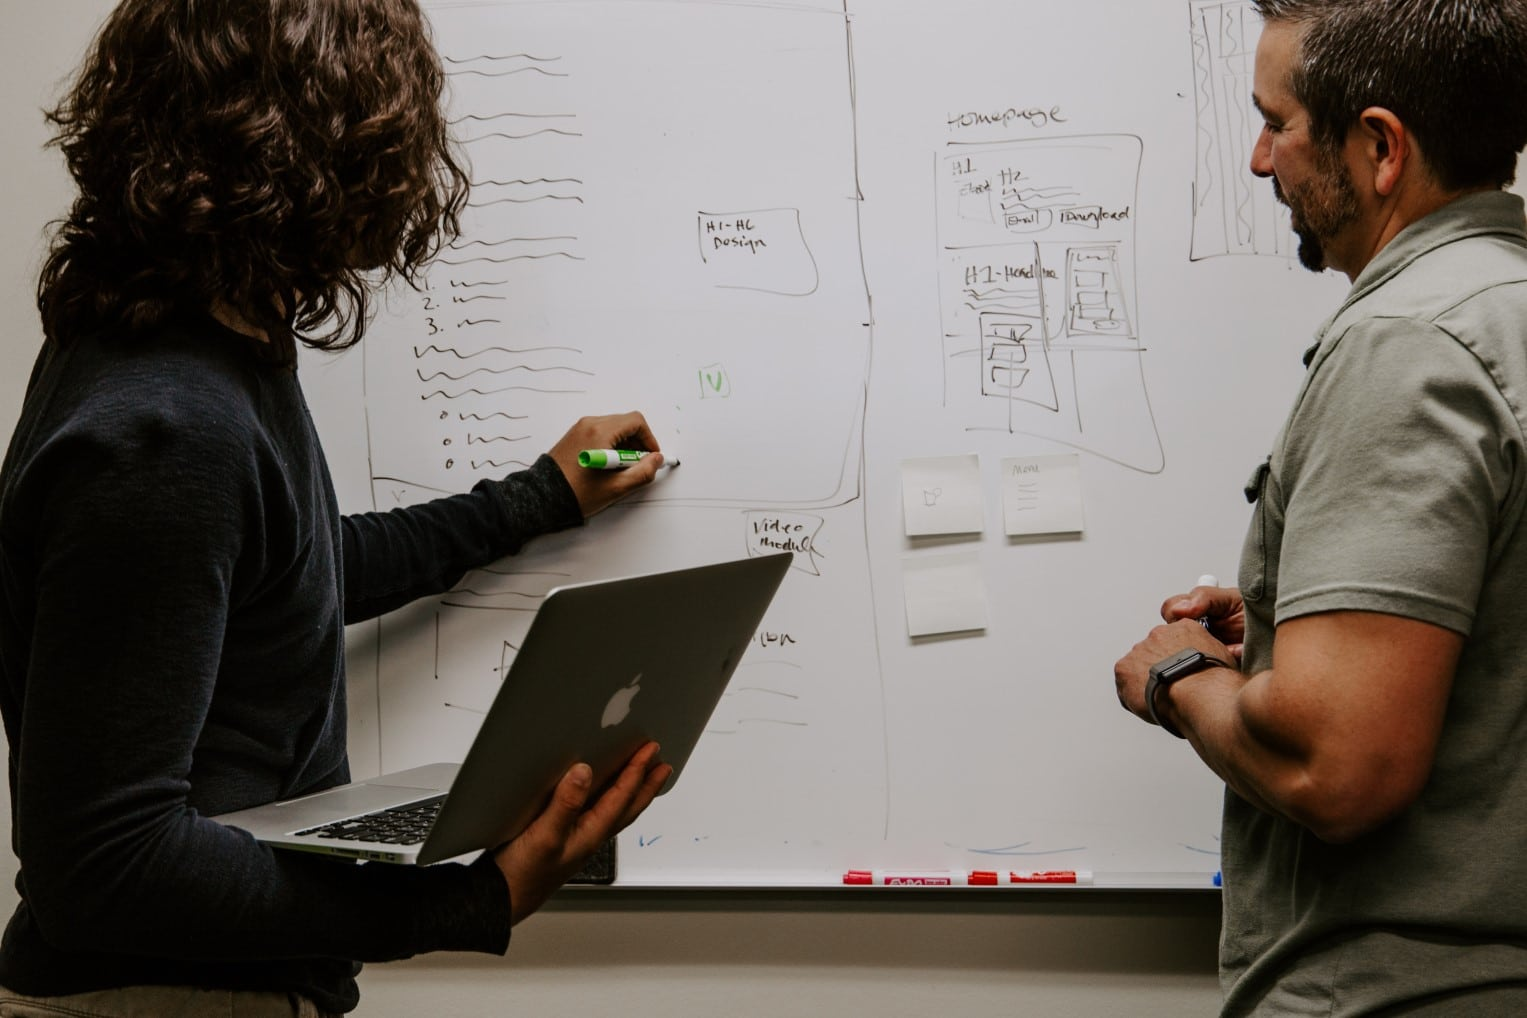 Two people using a whiteboard to plan changes to a website or platform.